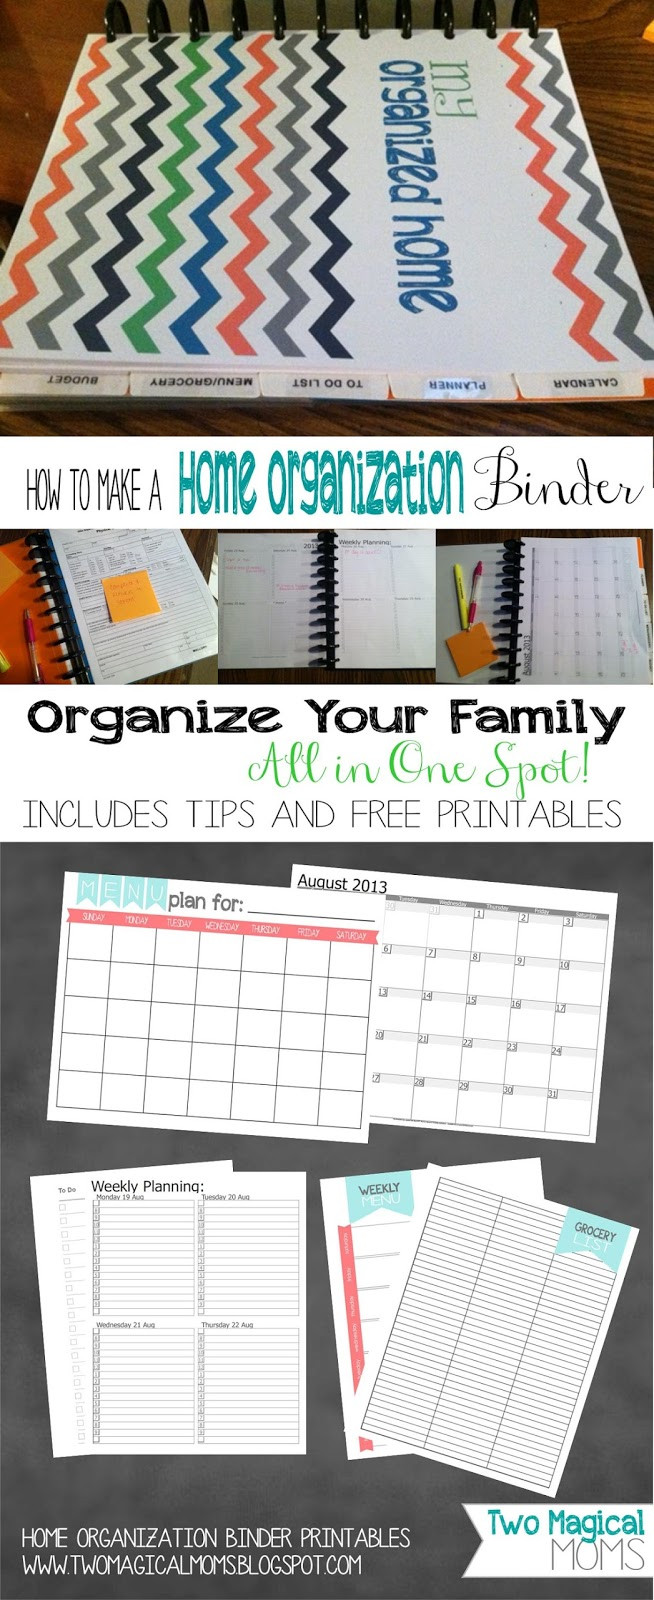 Home organization Binder Awesome Two Magical Moms Home organization Binder Tips and Free